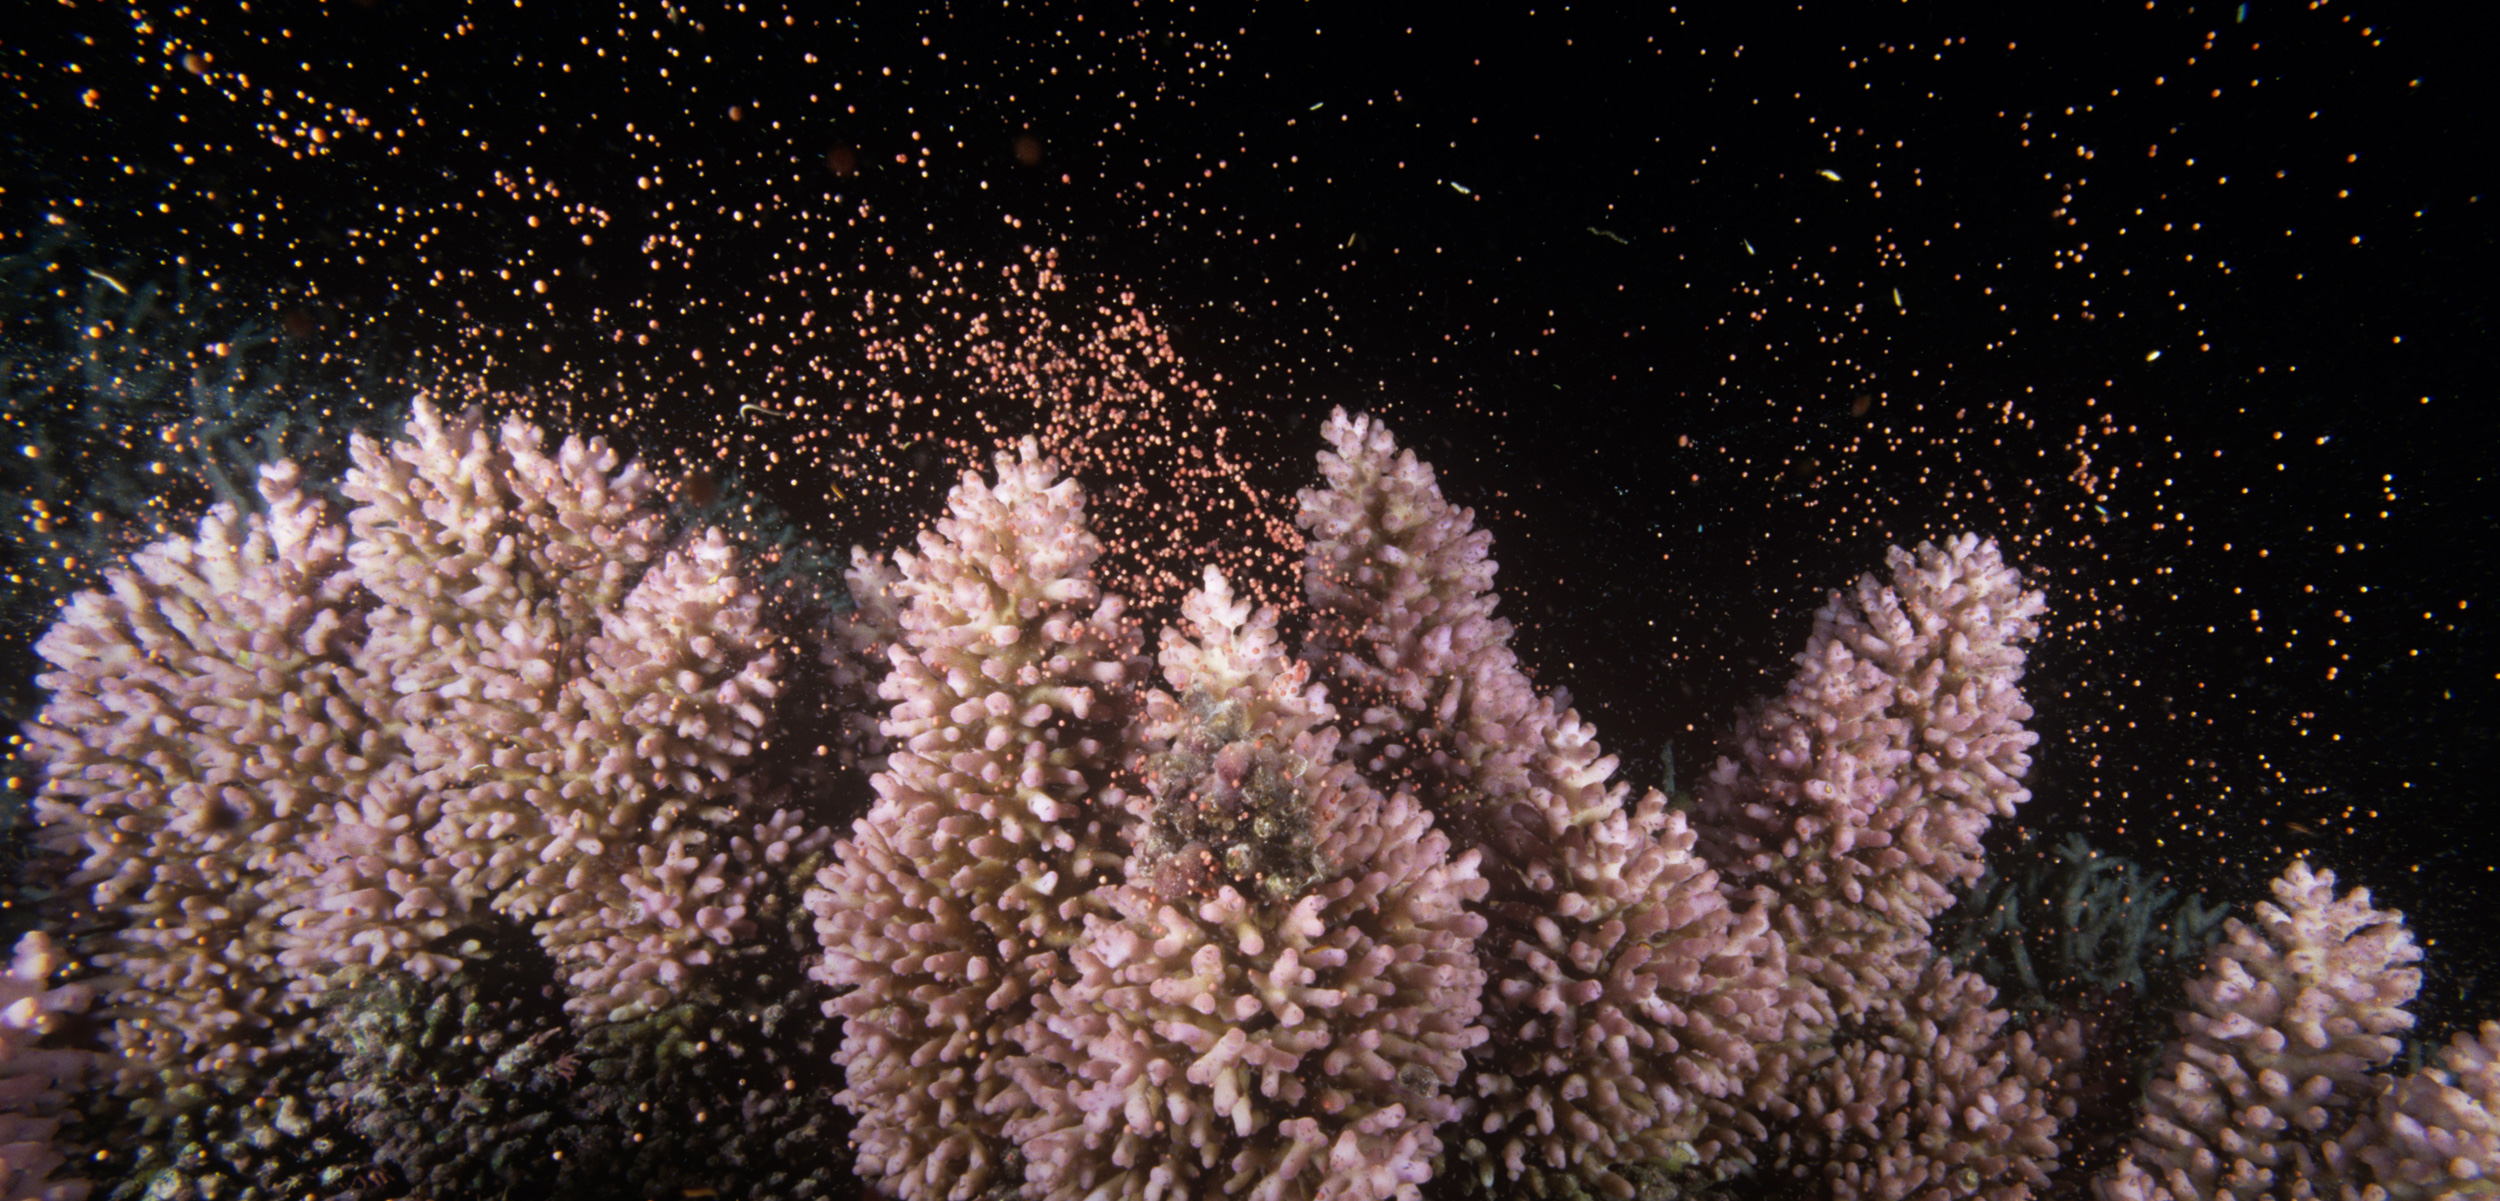 Corals, such as these staghorn corals on the Great Barrier Reef, are cued to spawn during a full moon. Photo by Becca Saunders/Minden Pictures